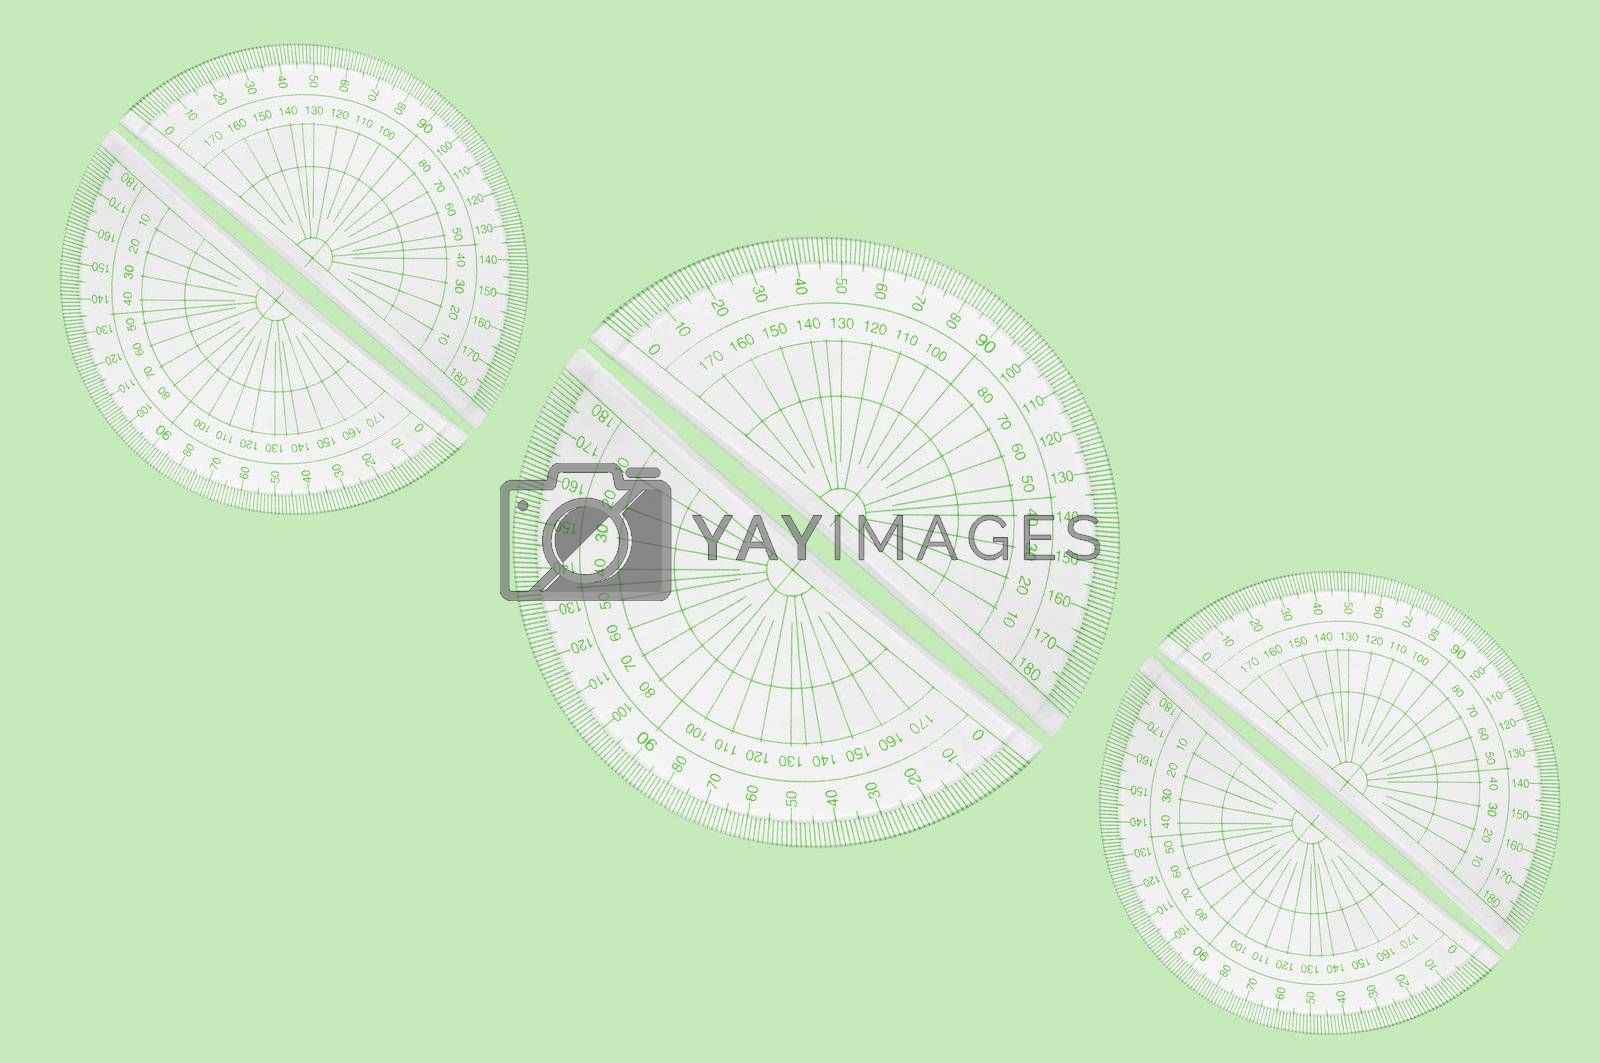 Several plastic protractors arranged in formation over pale green background.